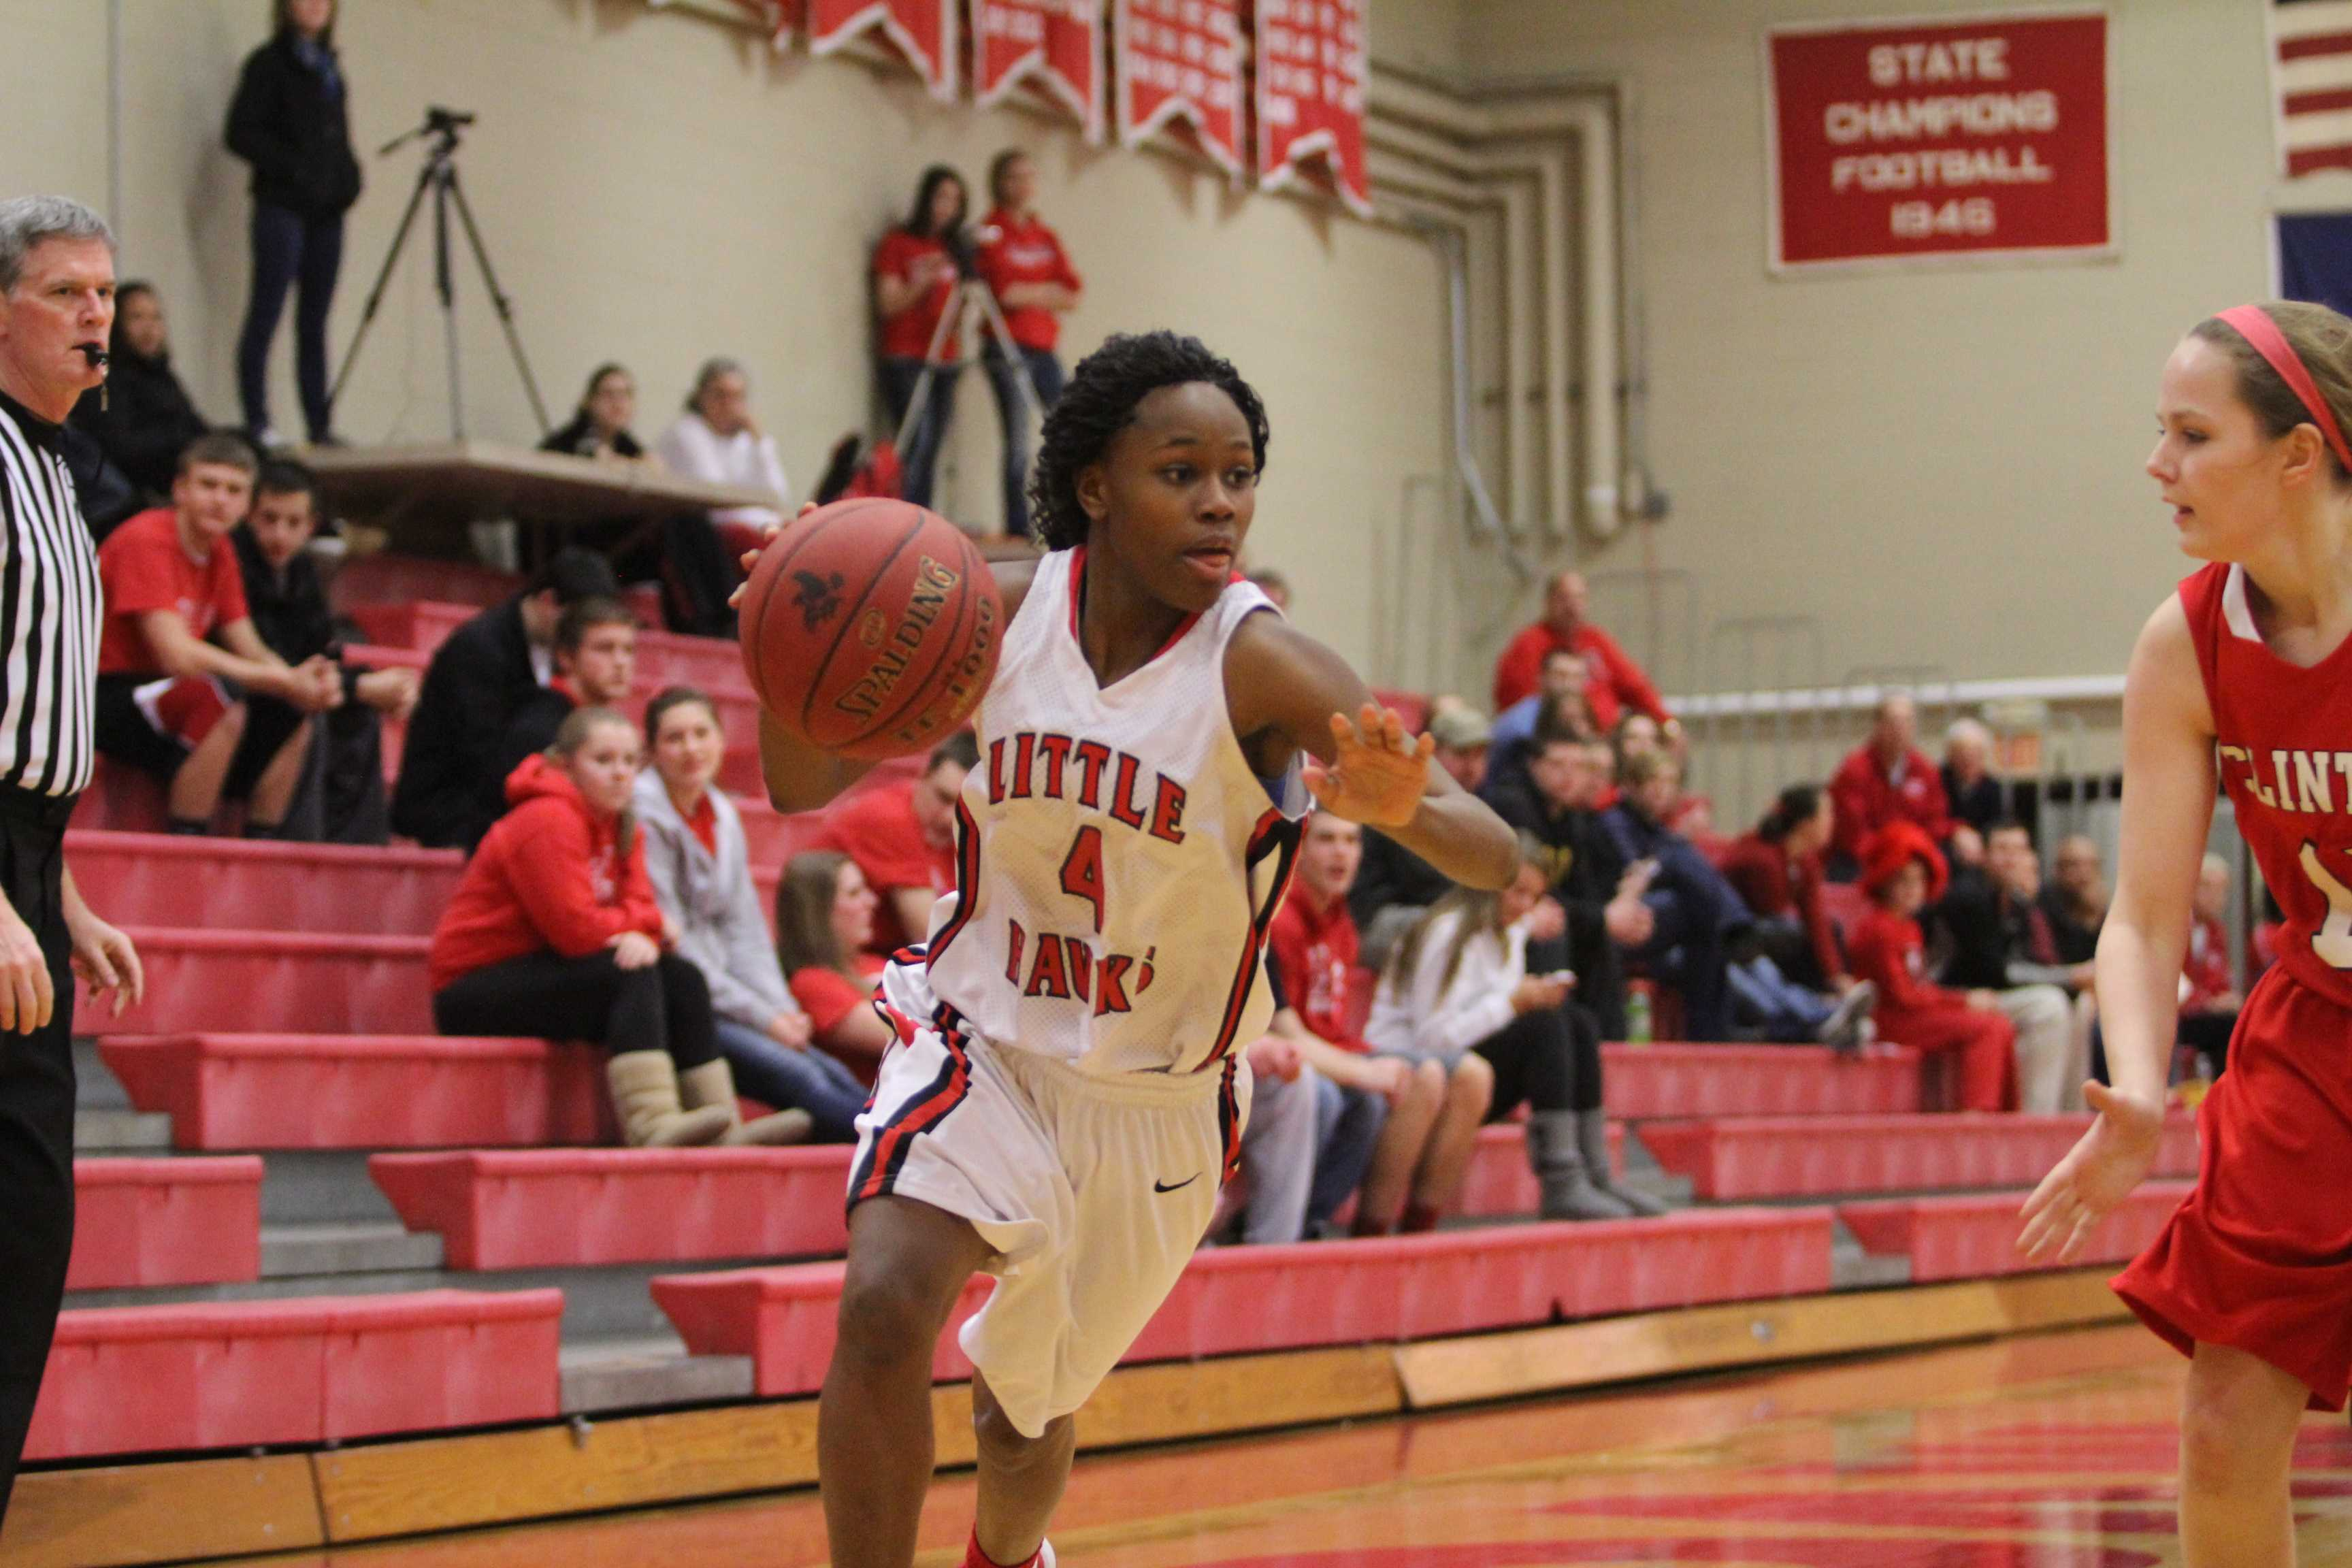 Kiera Washpun '14 drives to the basket during the substate semi-final game against Clinton. Photo by Ryan Young.